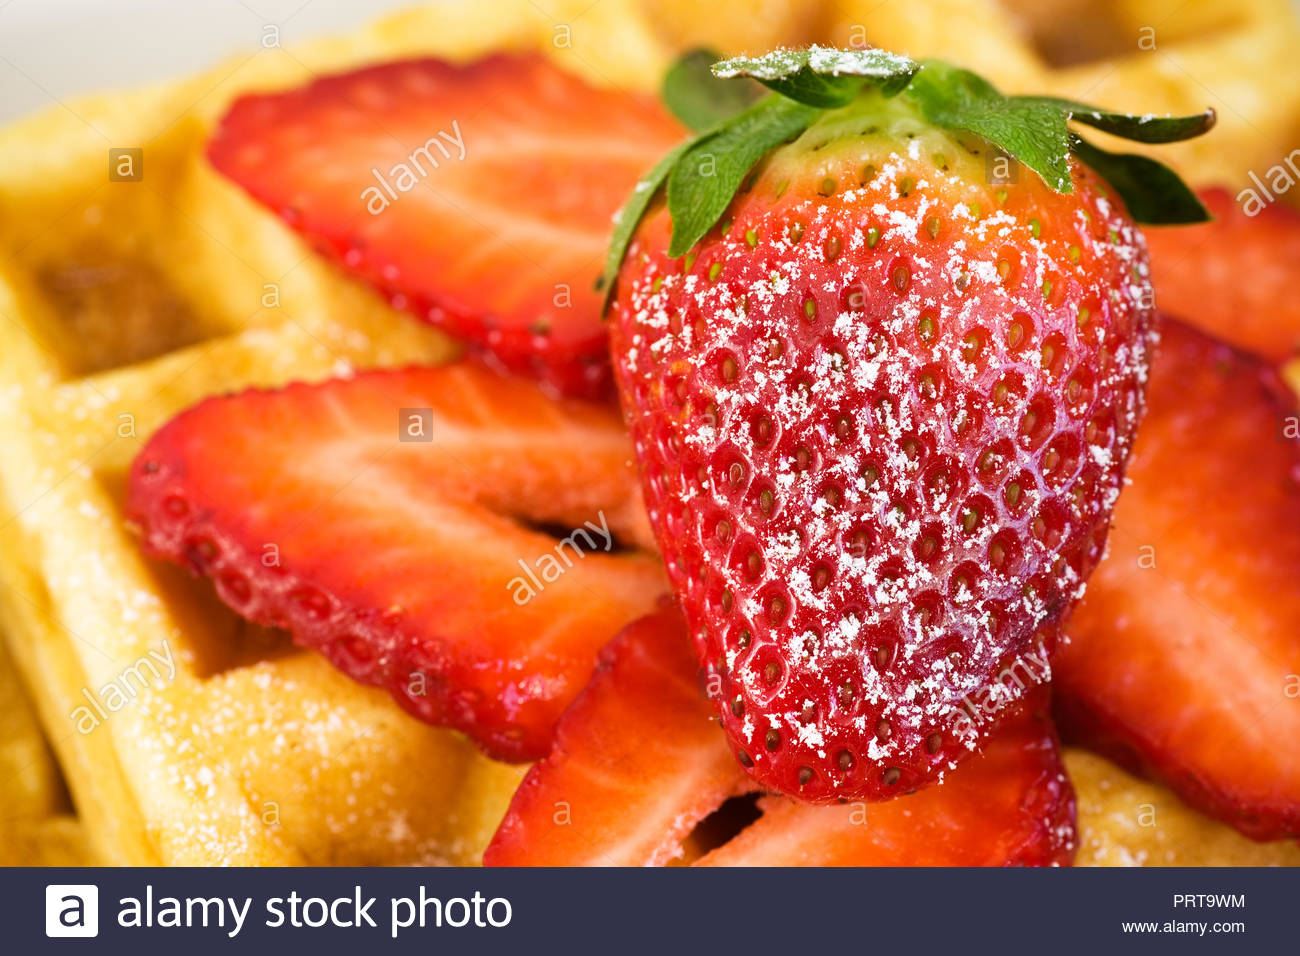 Delicious homemade waffles and fresh strawberries lightly dusted with powdered sugar. - Stock Image